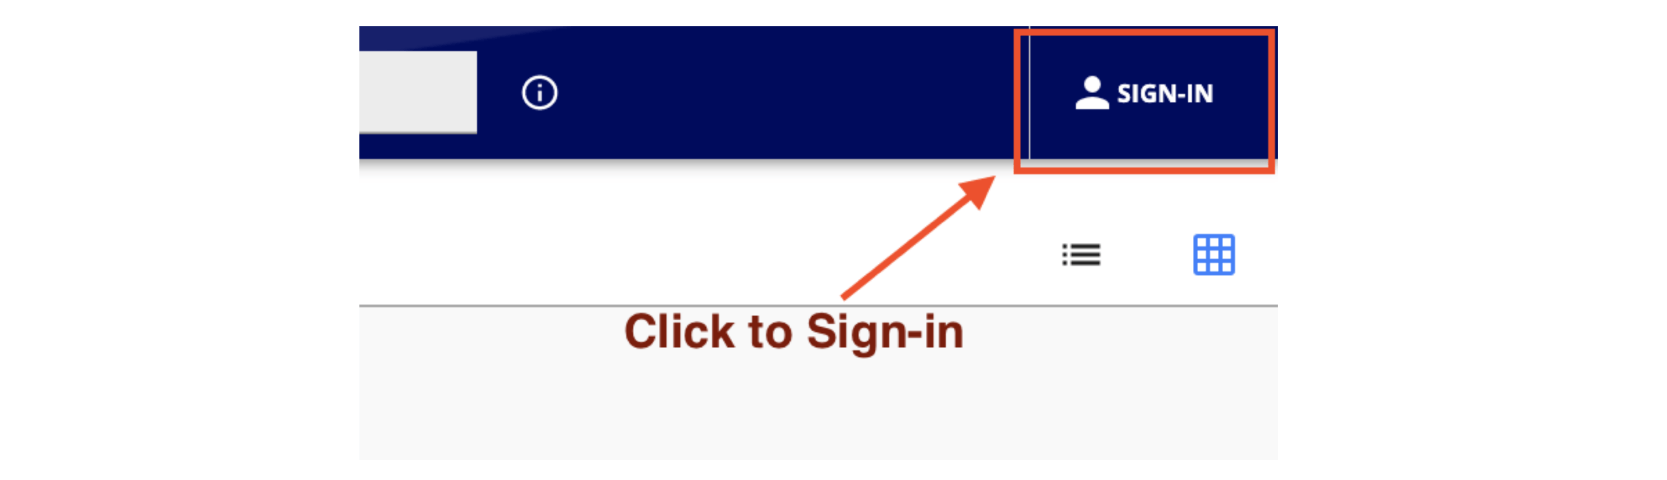 "Click ""SIGN-IN"""